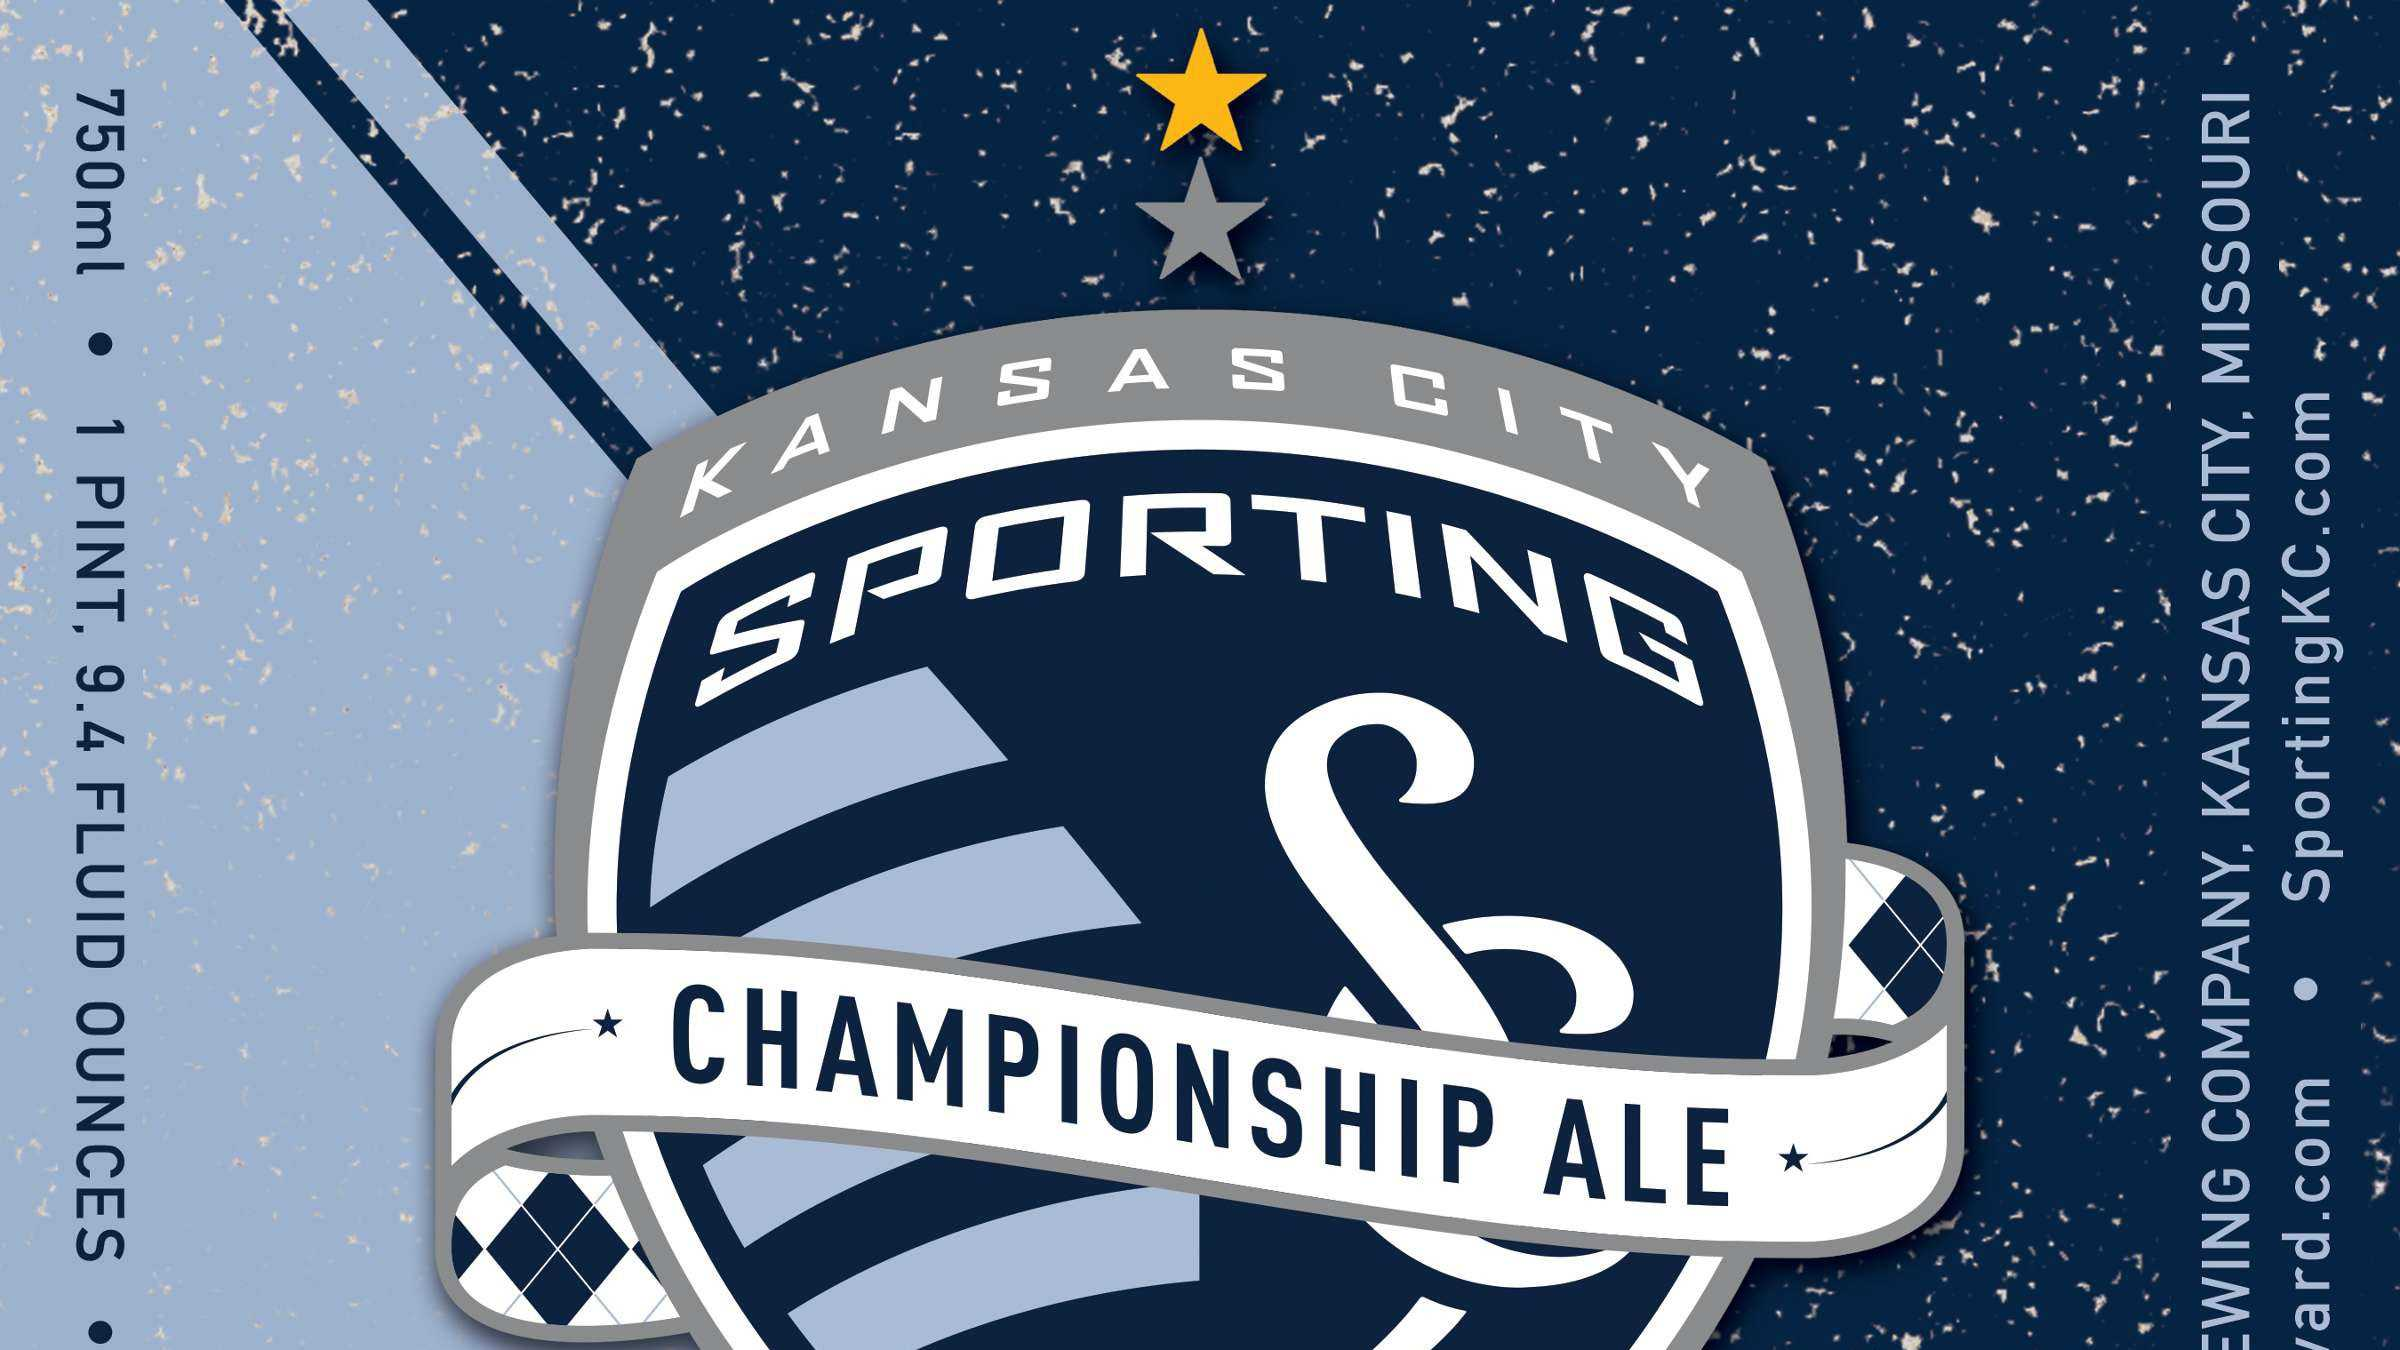 Championship Ale, Sporting